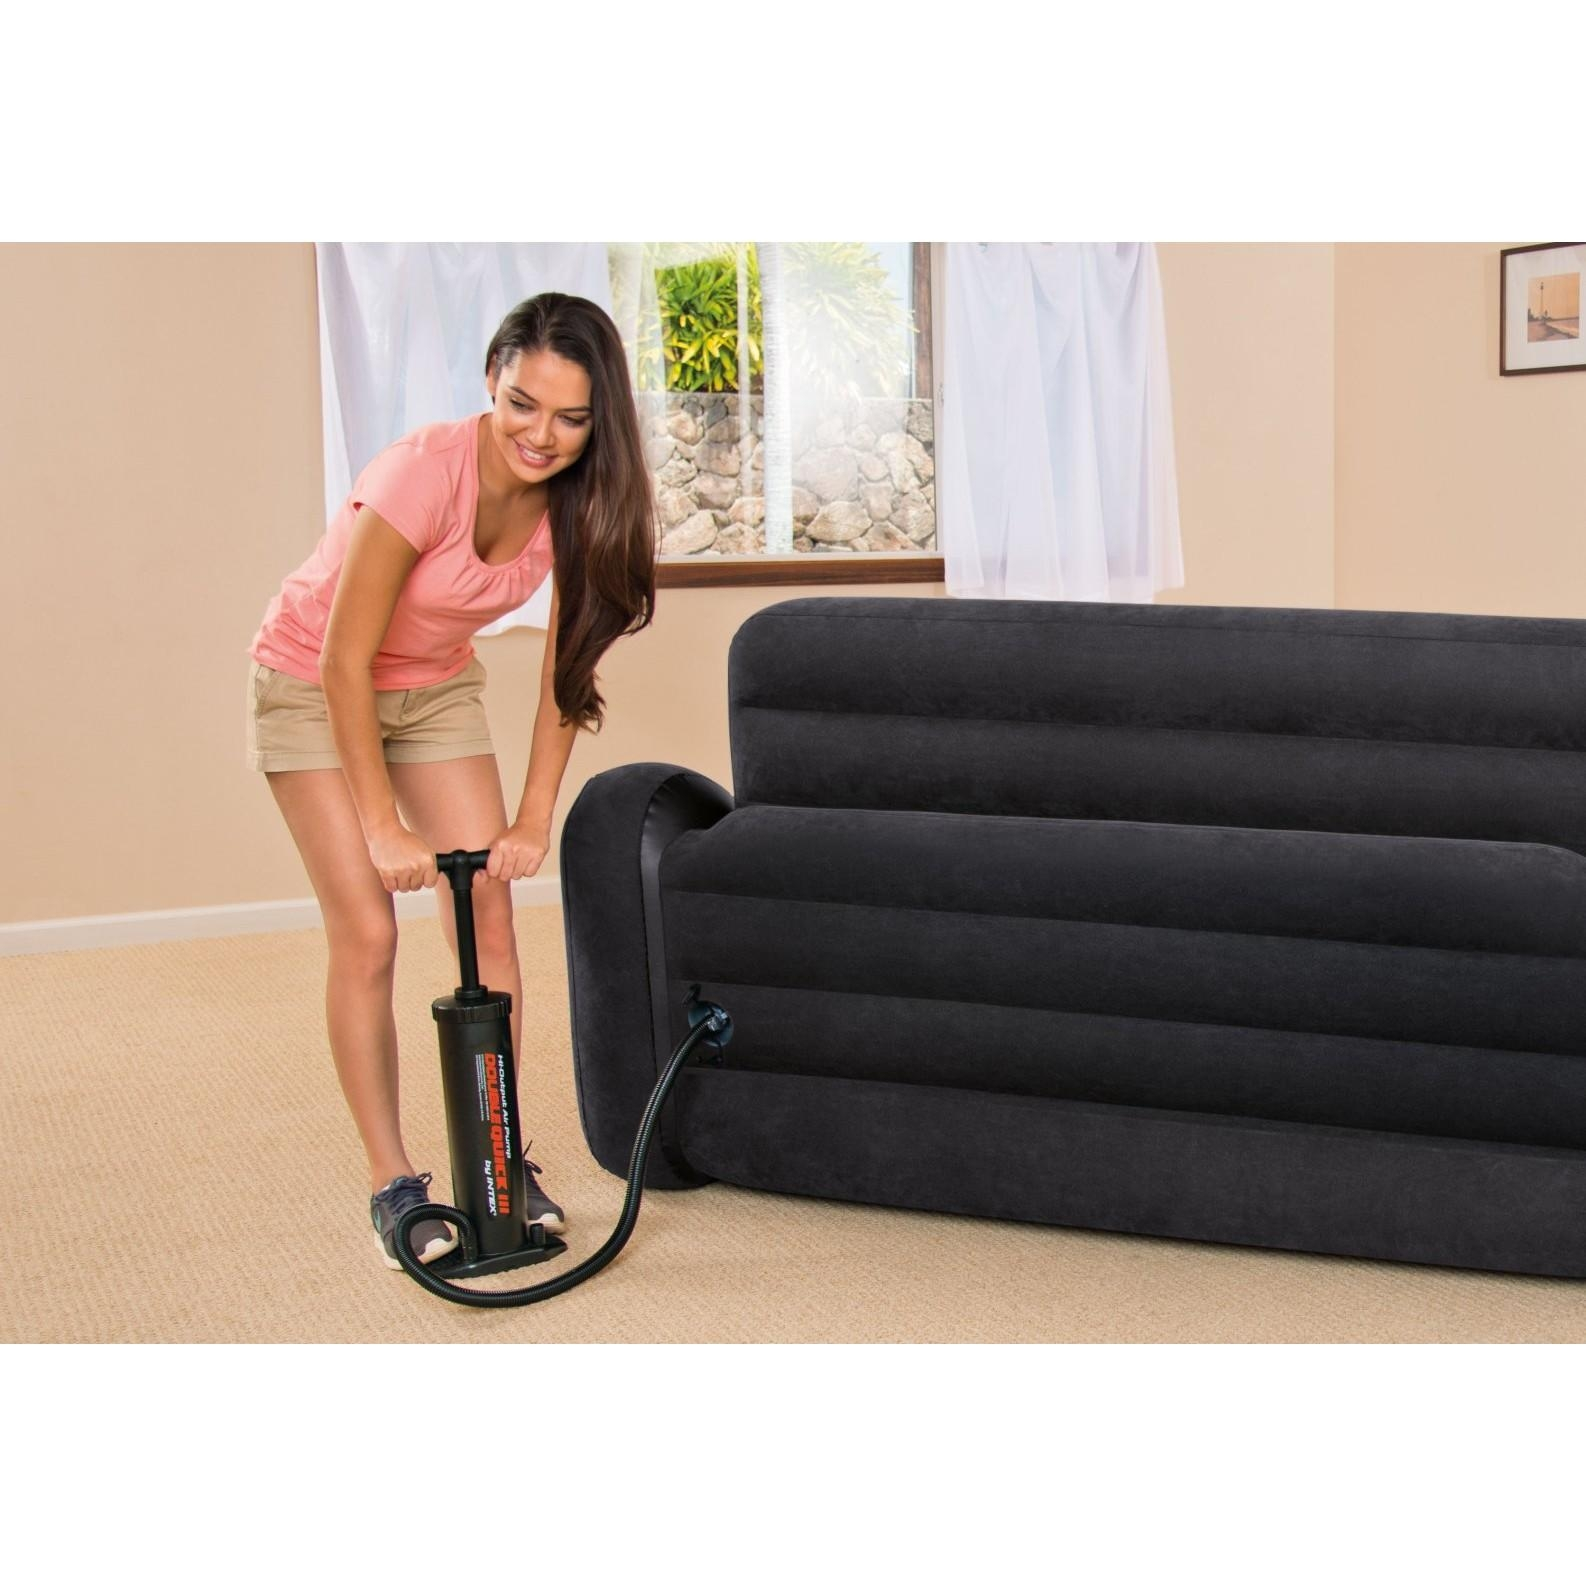 Intex Pull Out Sofa Inflatable Bed, Queen With Regard To Intex Inflatable Pull Out Sofas (View 15 of 20)